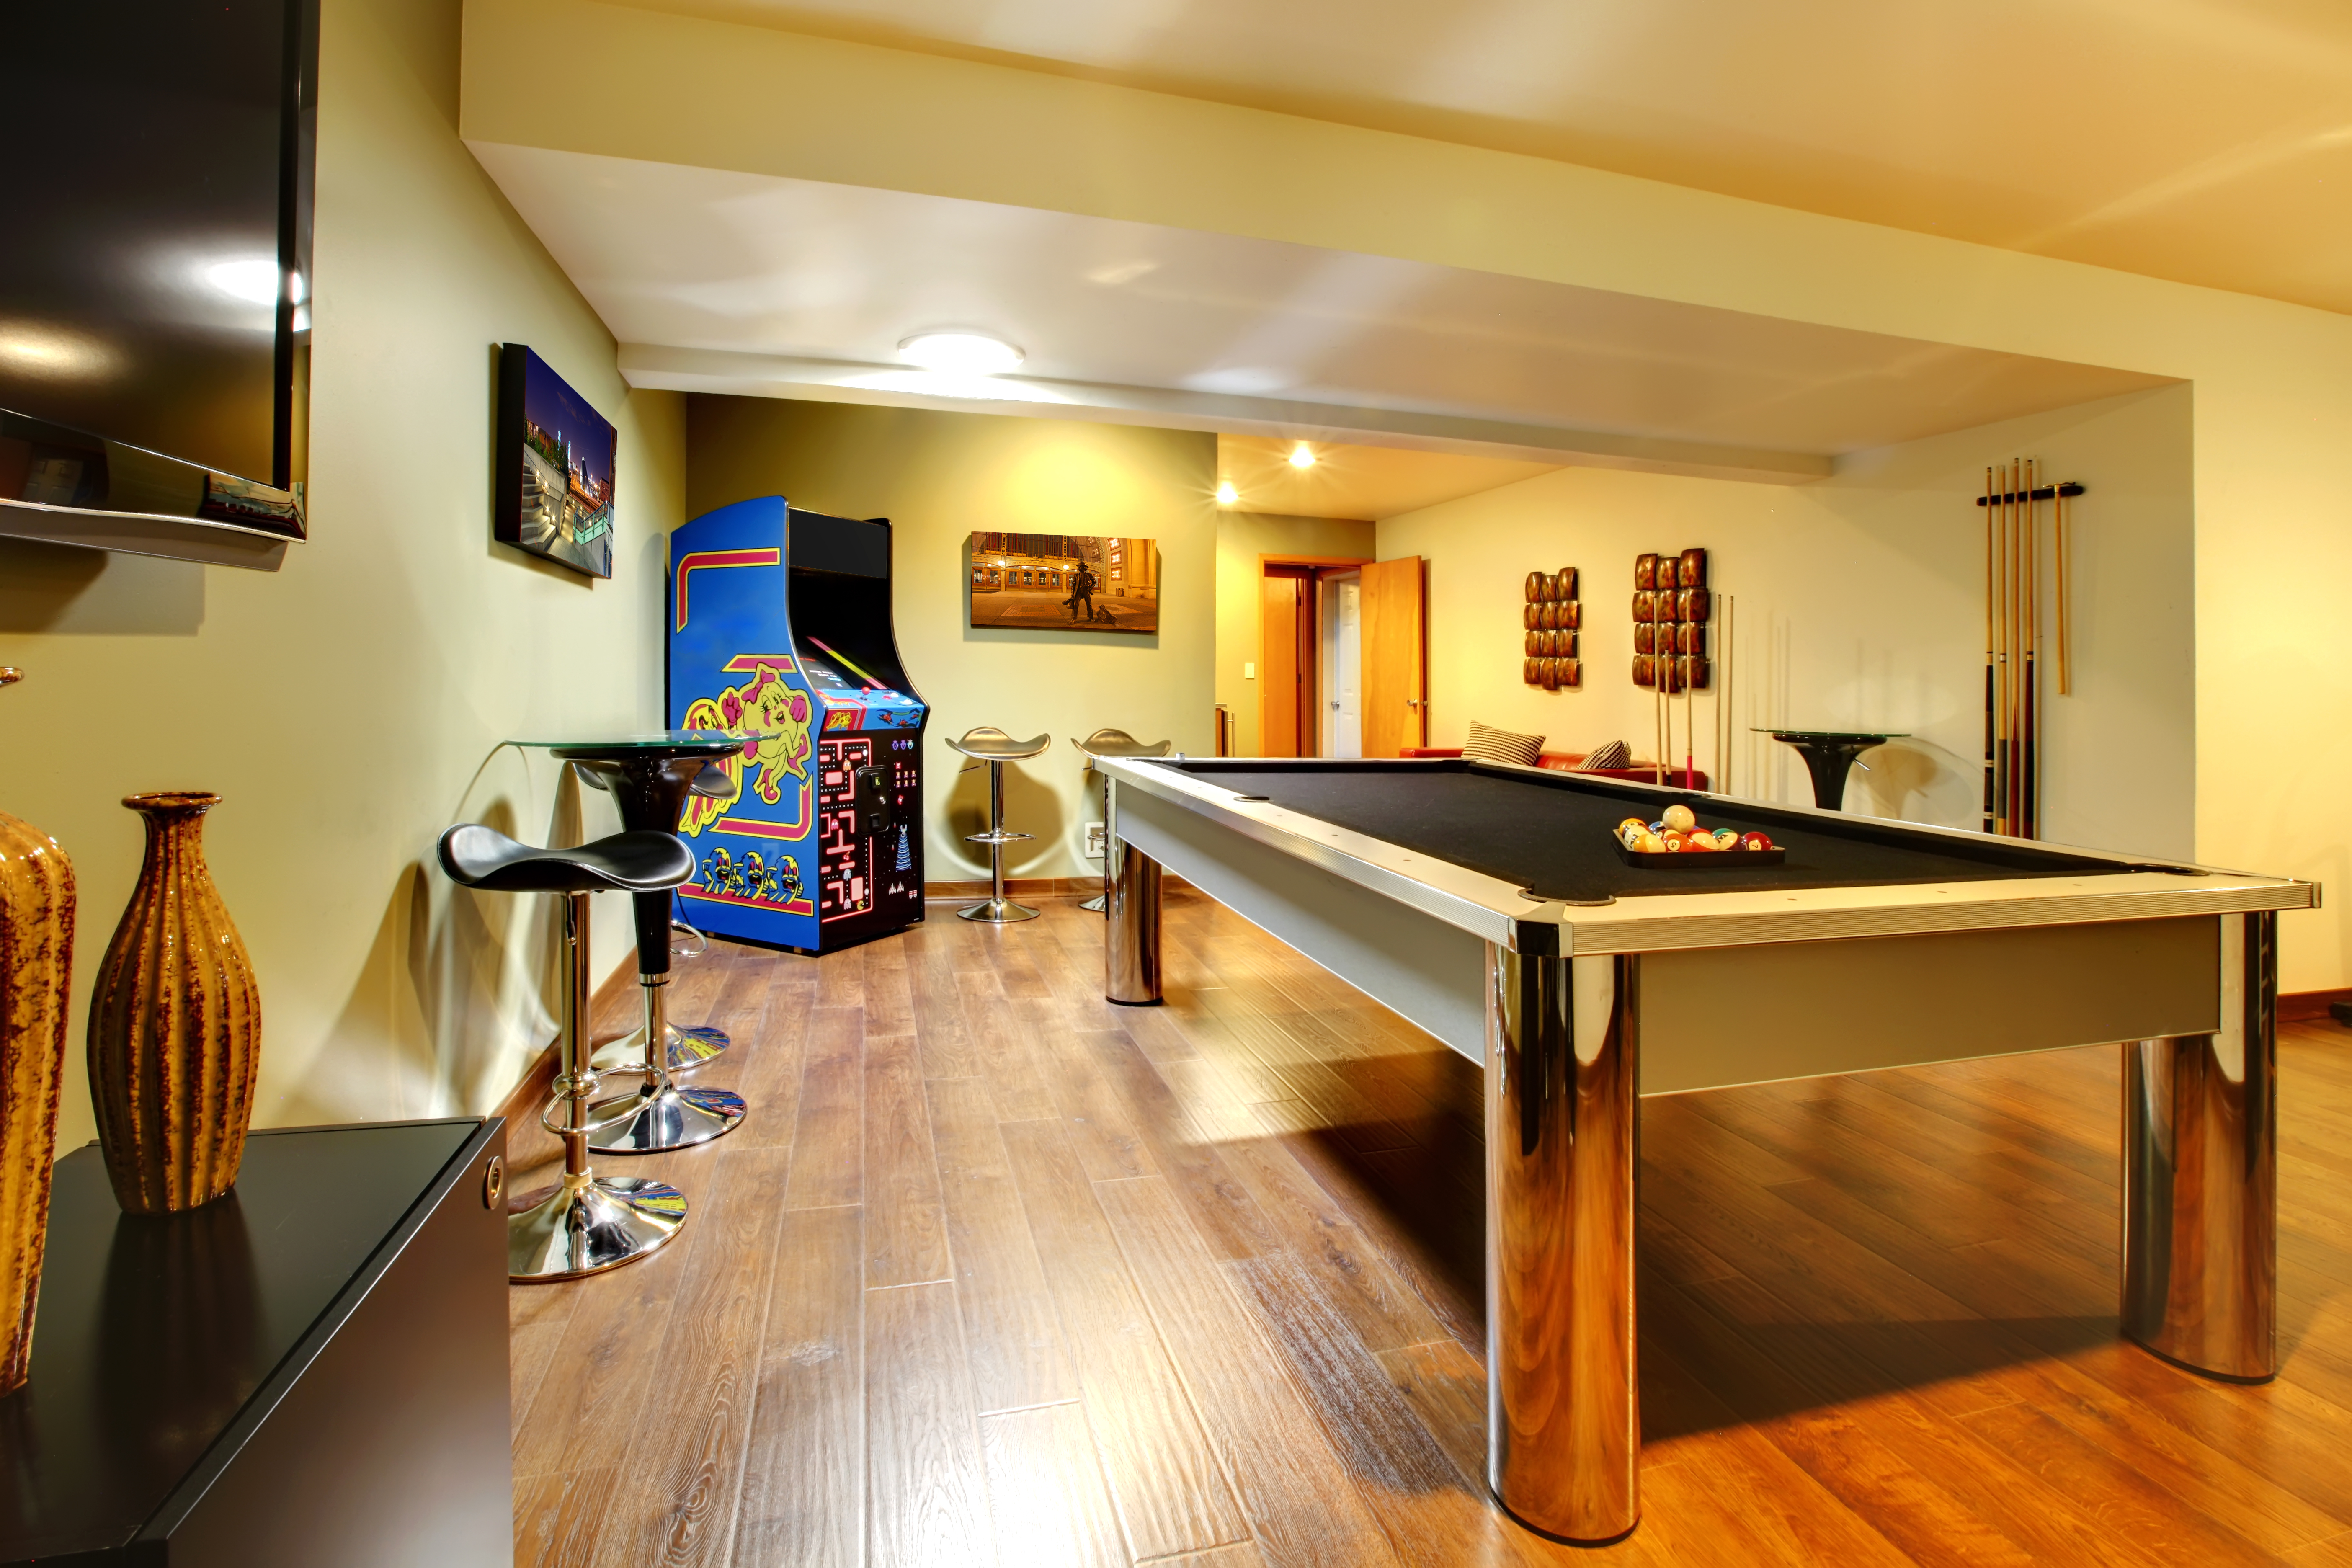 bigstock-Play-Party-Room-Home-Interior-30562541